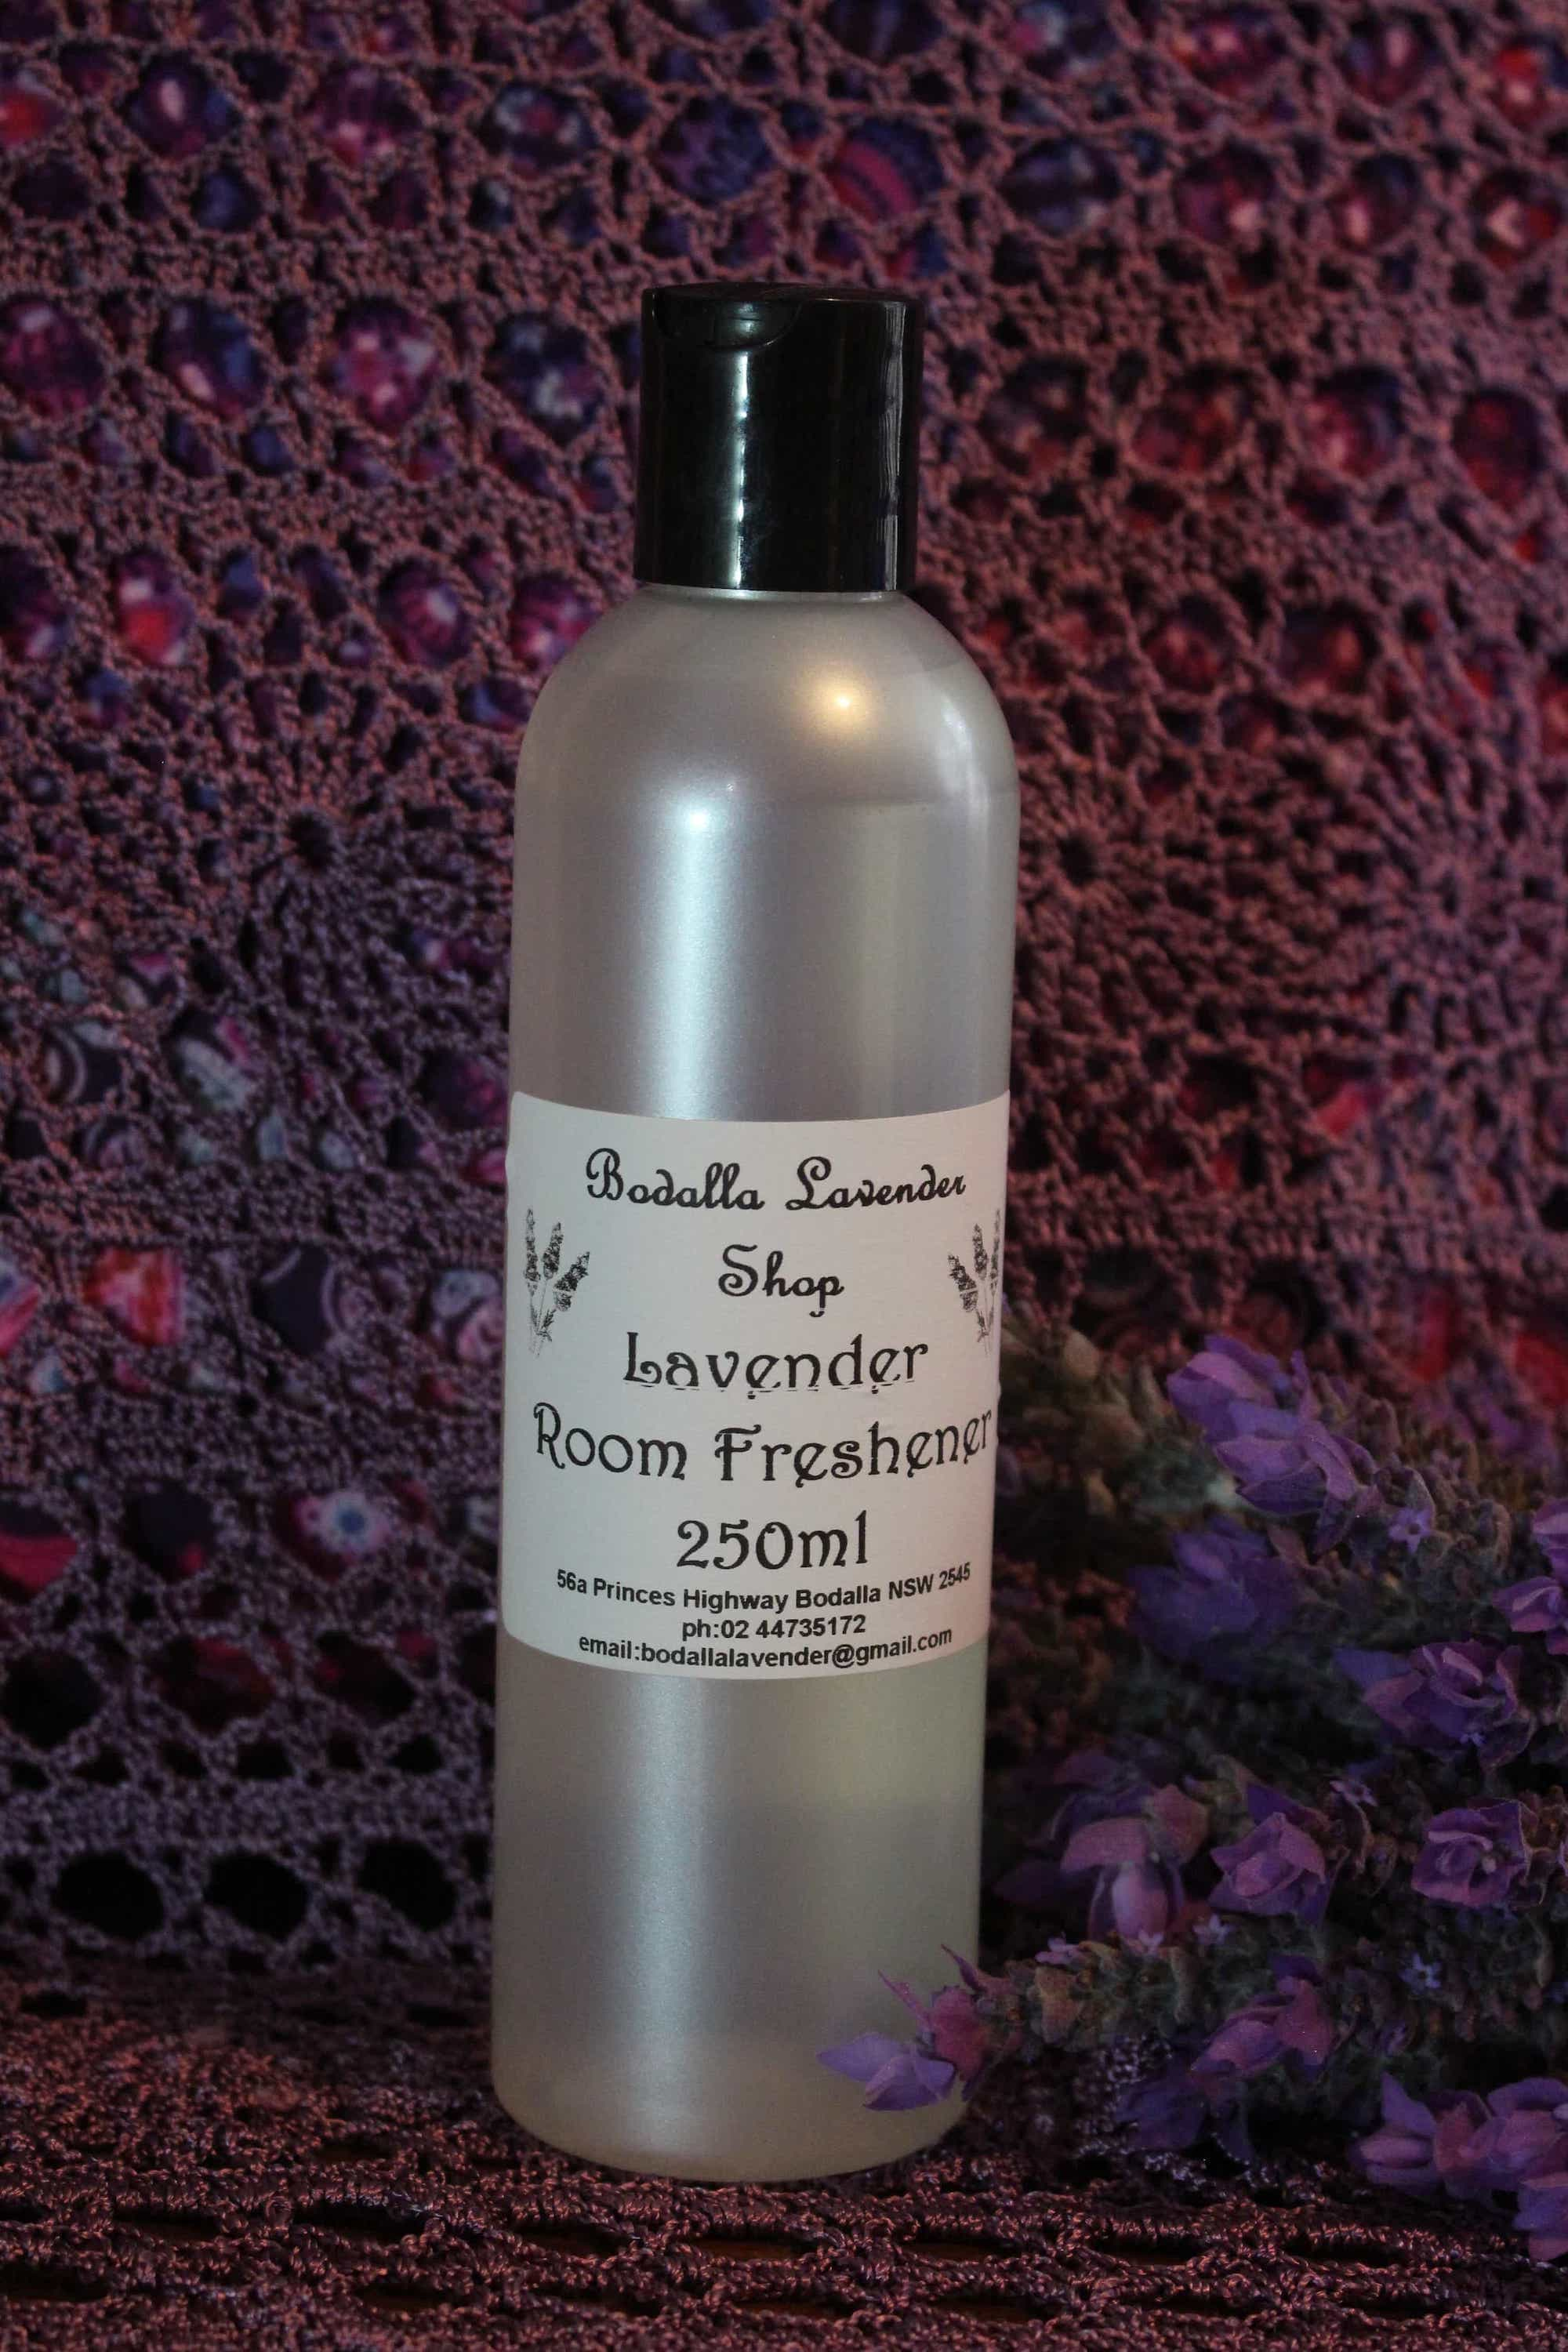 Photograph of an Lavender Room Freshener 250ml product